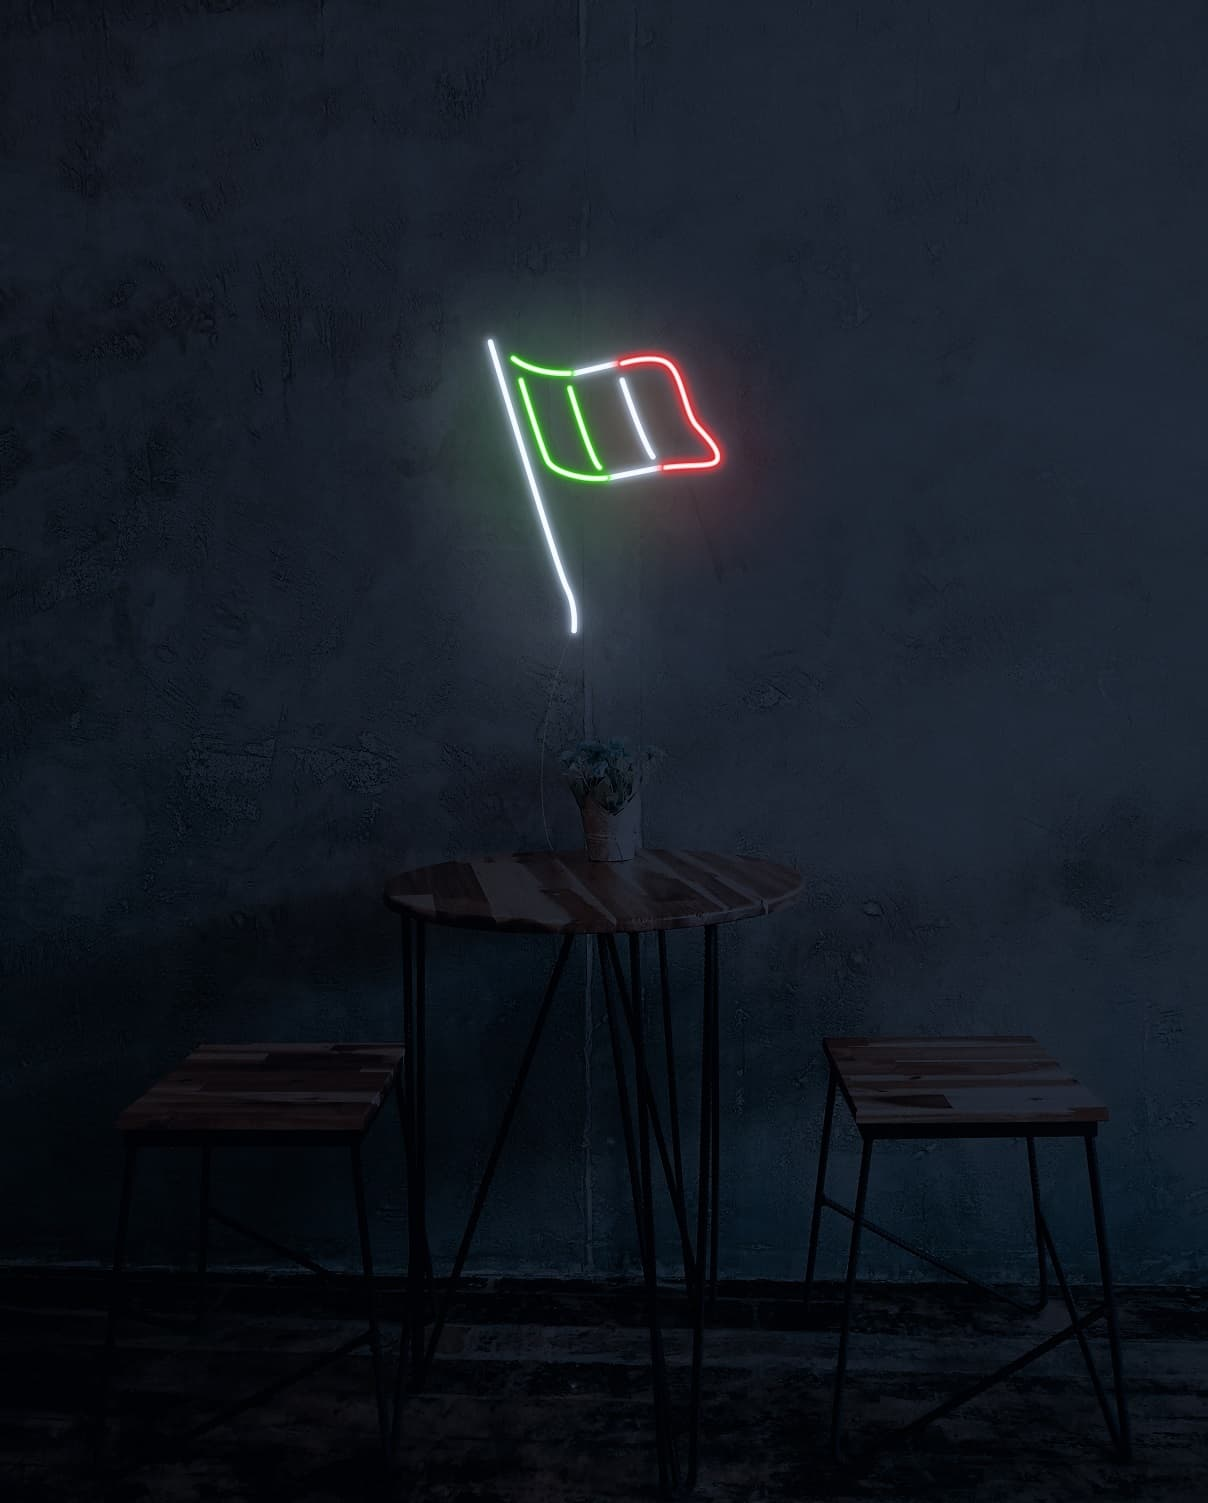 italy flag neon signs